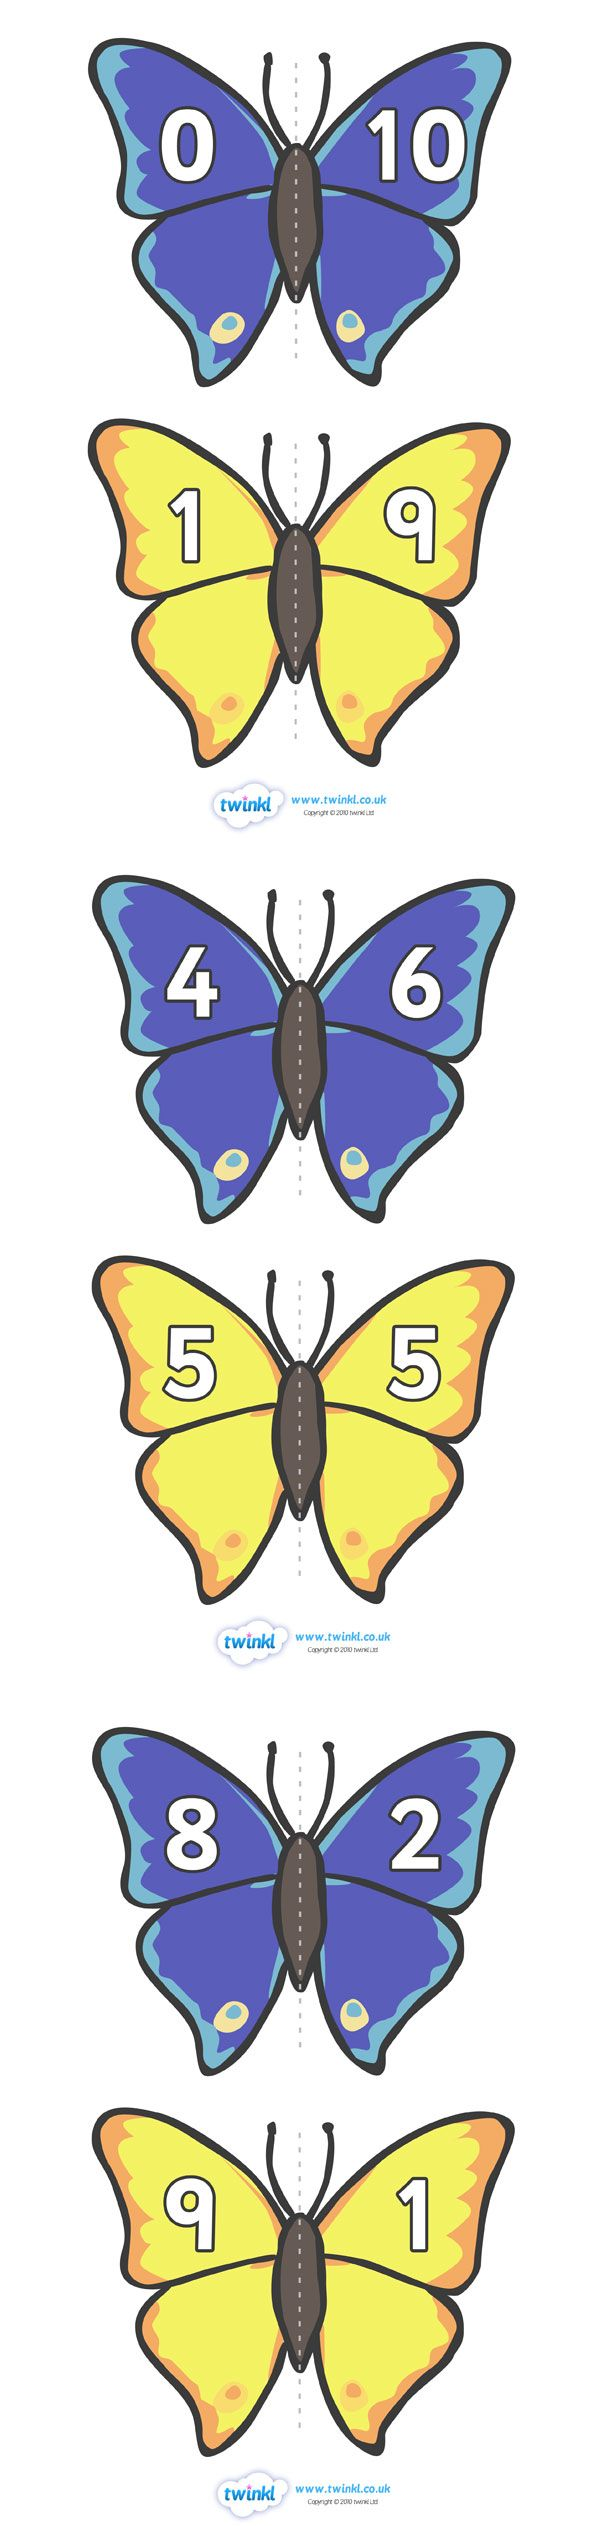 7.4.6 Combining and Partitioning Involving Five and Ten:  Number Bonds to 10 Matching Cards (Butterflies).